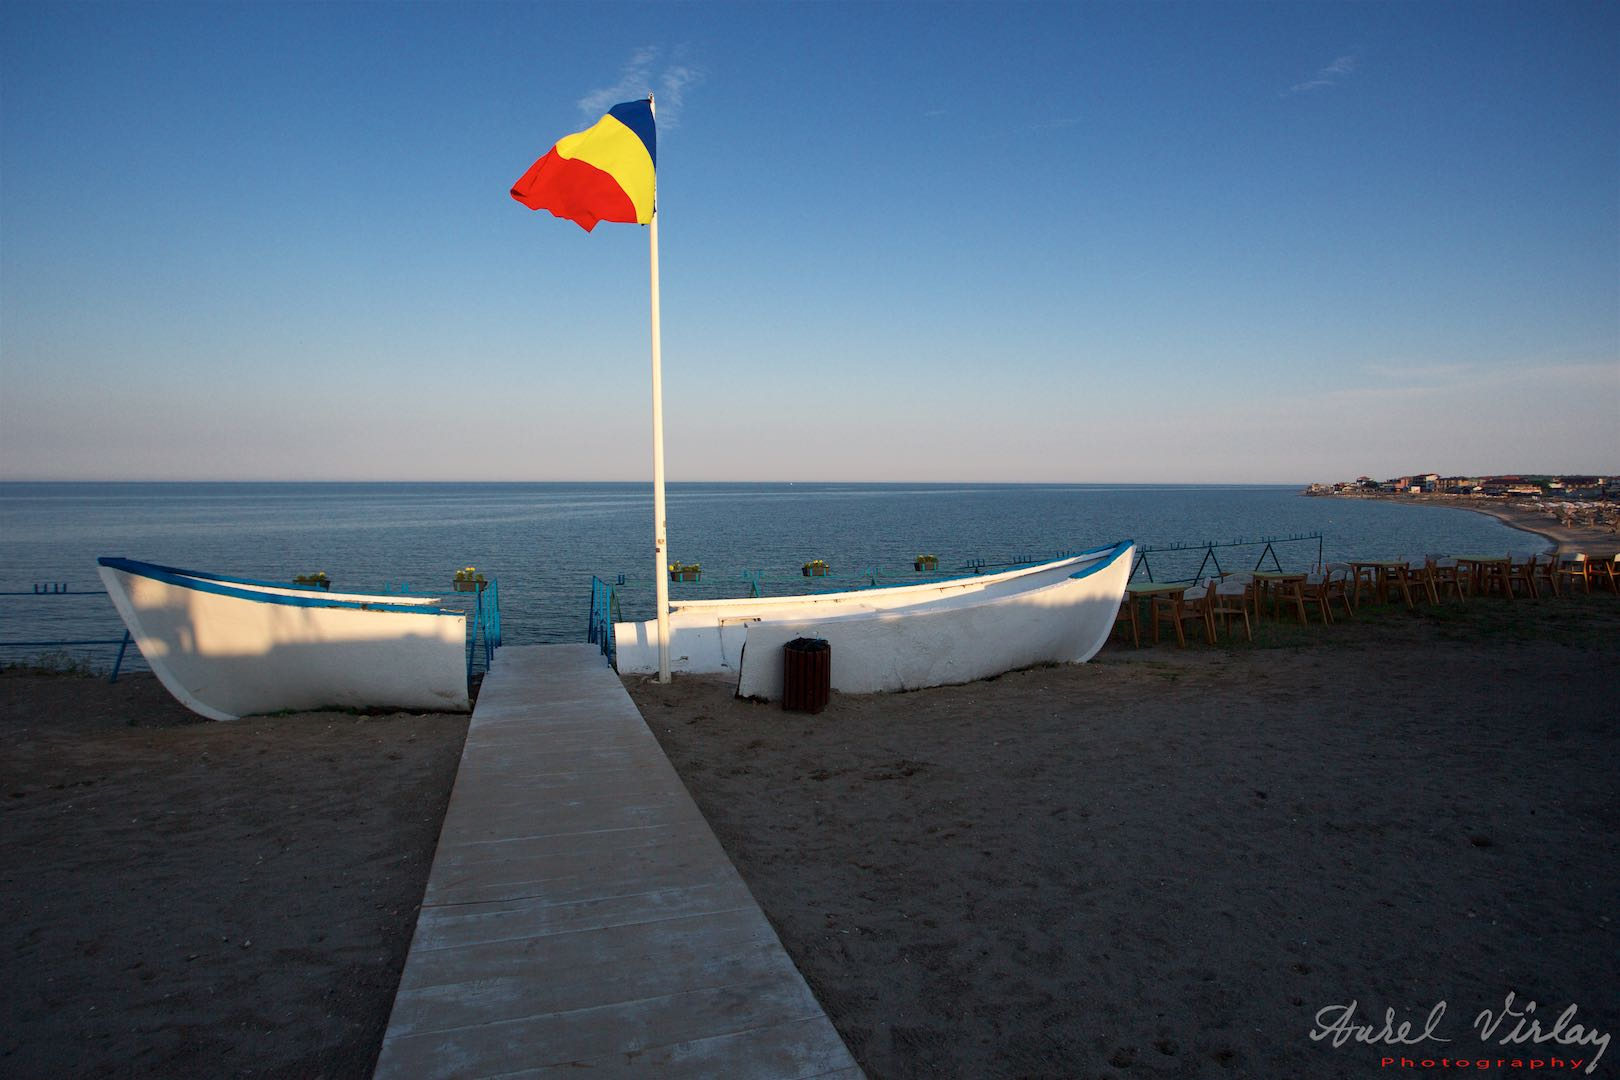 The road to the Black Sea crosses the white boat from Pescarie.